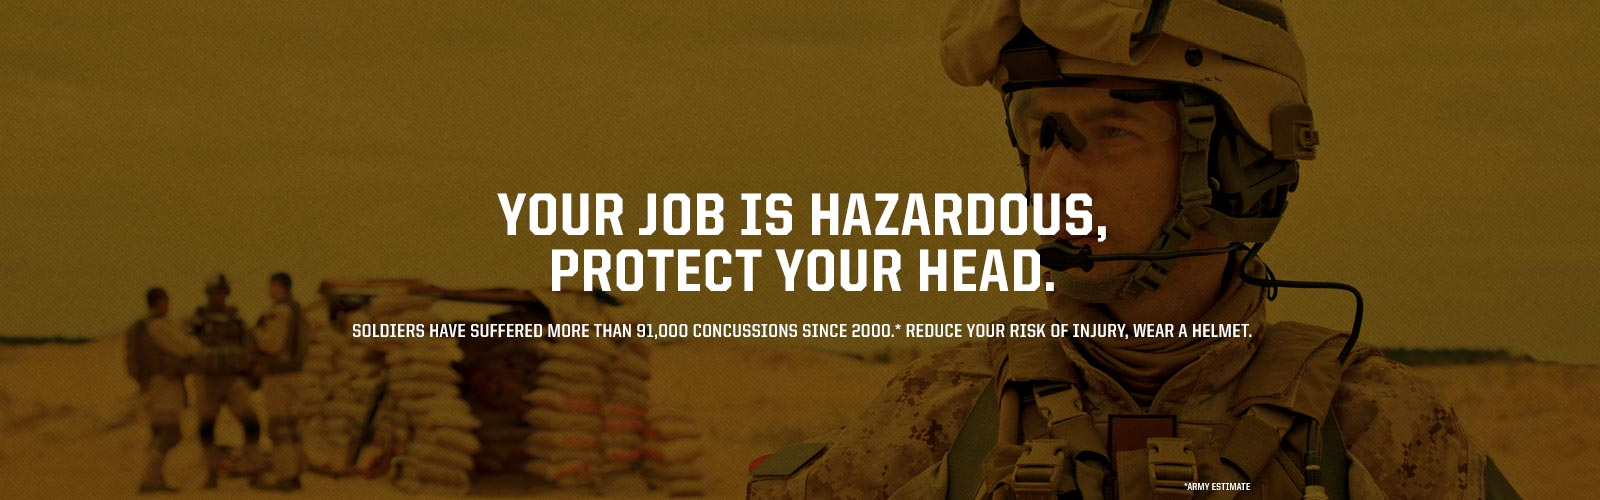 Soldiers Have Suffered More Than 91,000 Concussions Since 2000. Reduce Your Risk of Injury, Wear a Helmet.